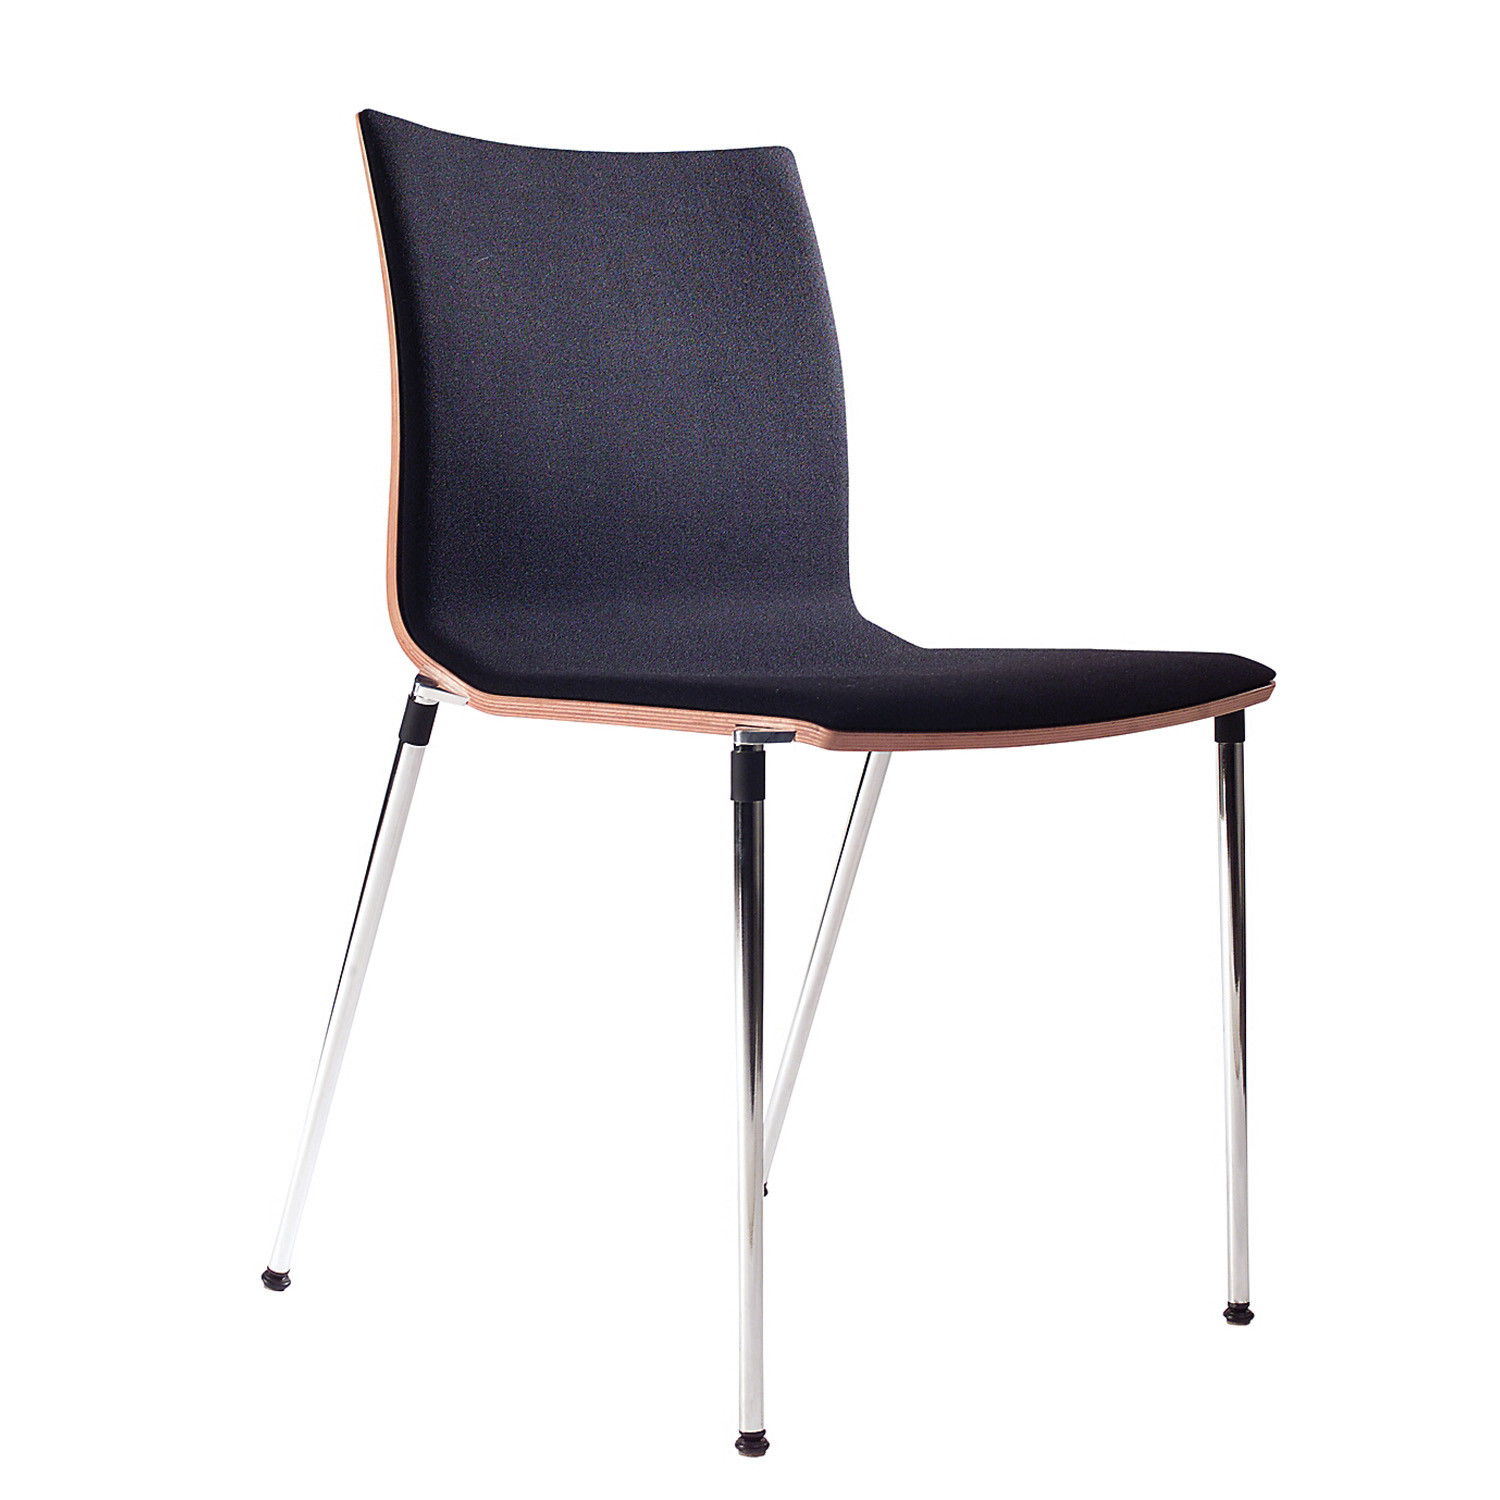 Sala Chair by Zuco Furniture